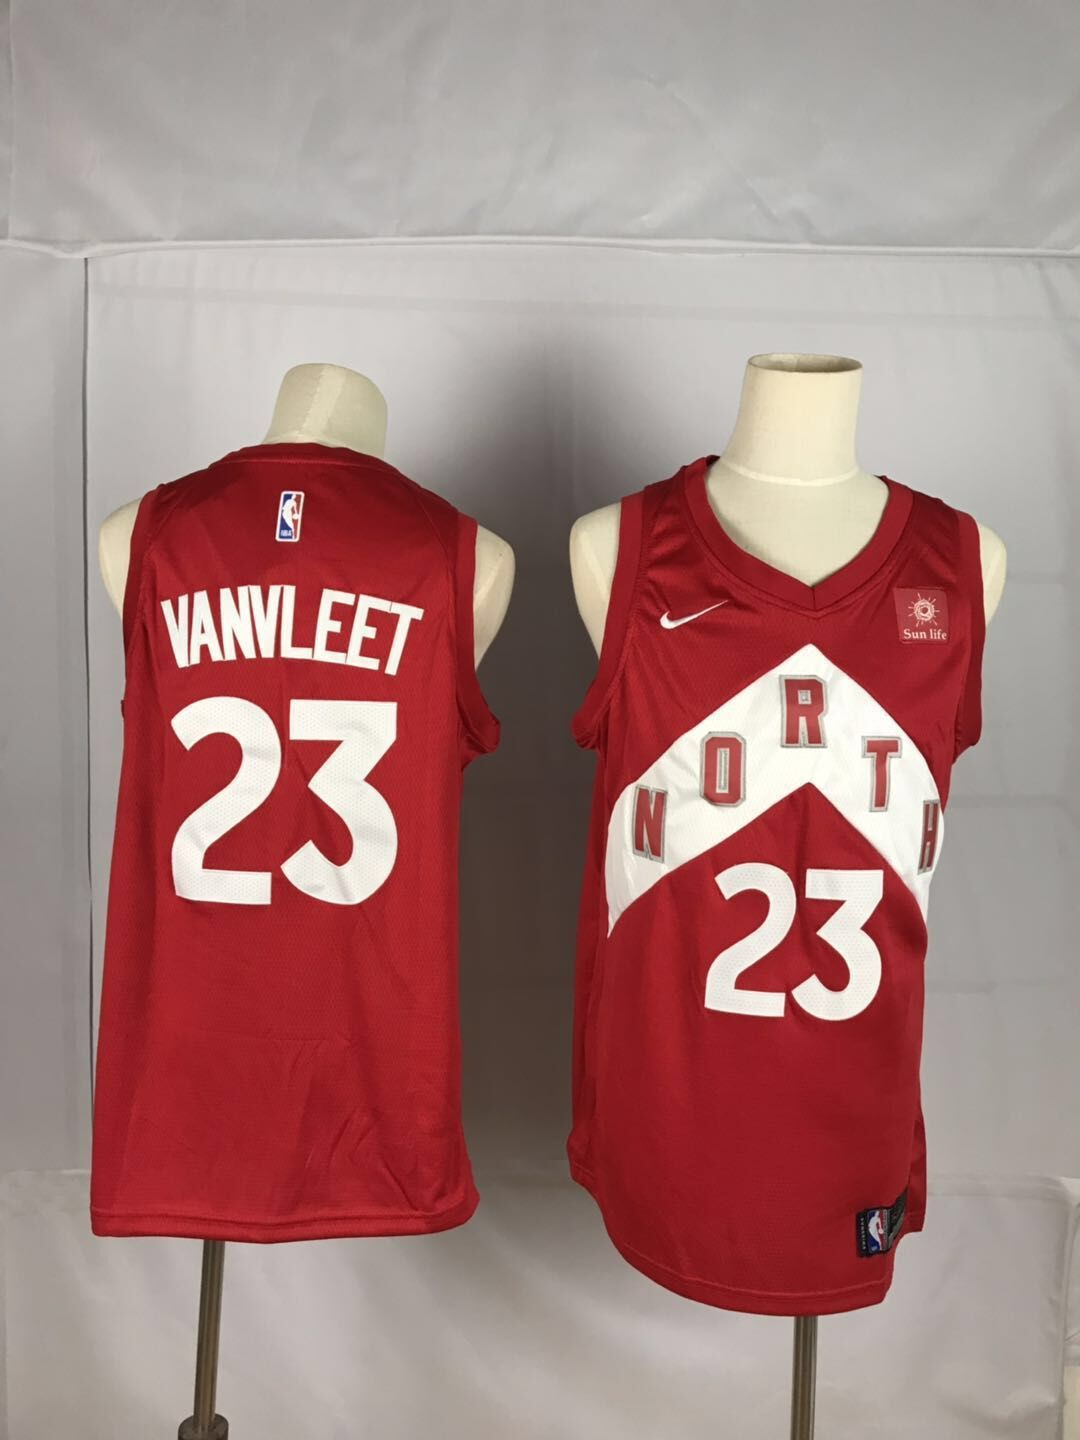 2019 Men Toronto Raptors 23 Vanvleet red NBA Nike Jerseys